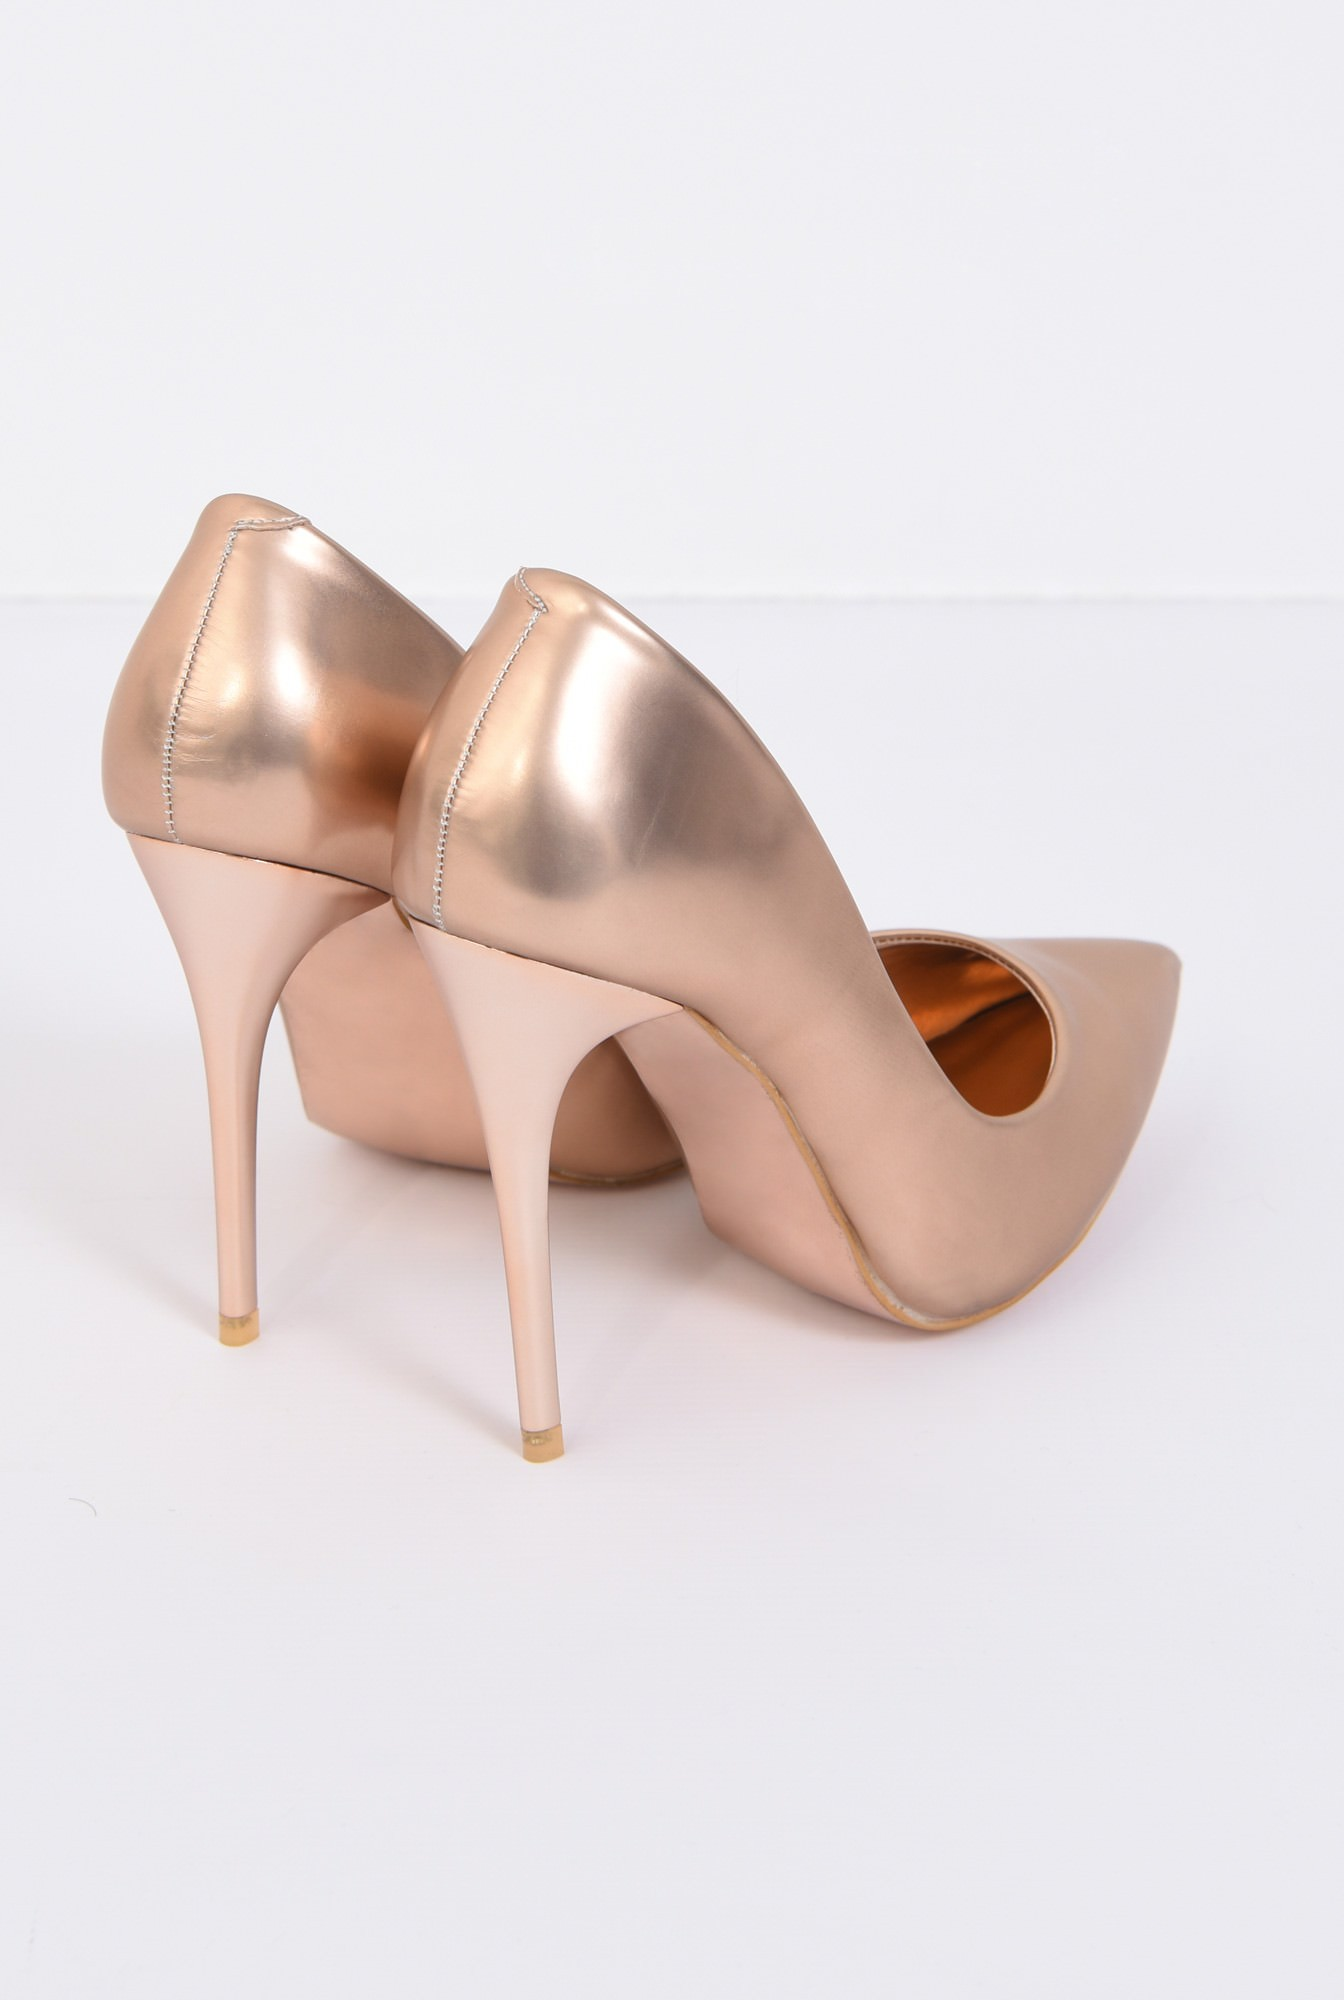 1 - PANTOFI STILETTO PO10091701-GOLD/ROSE